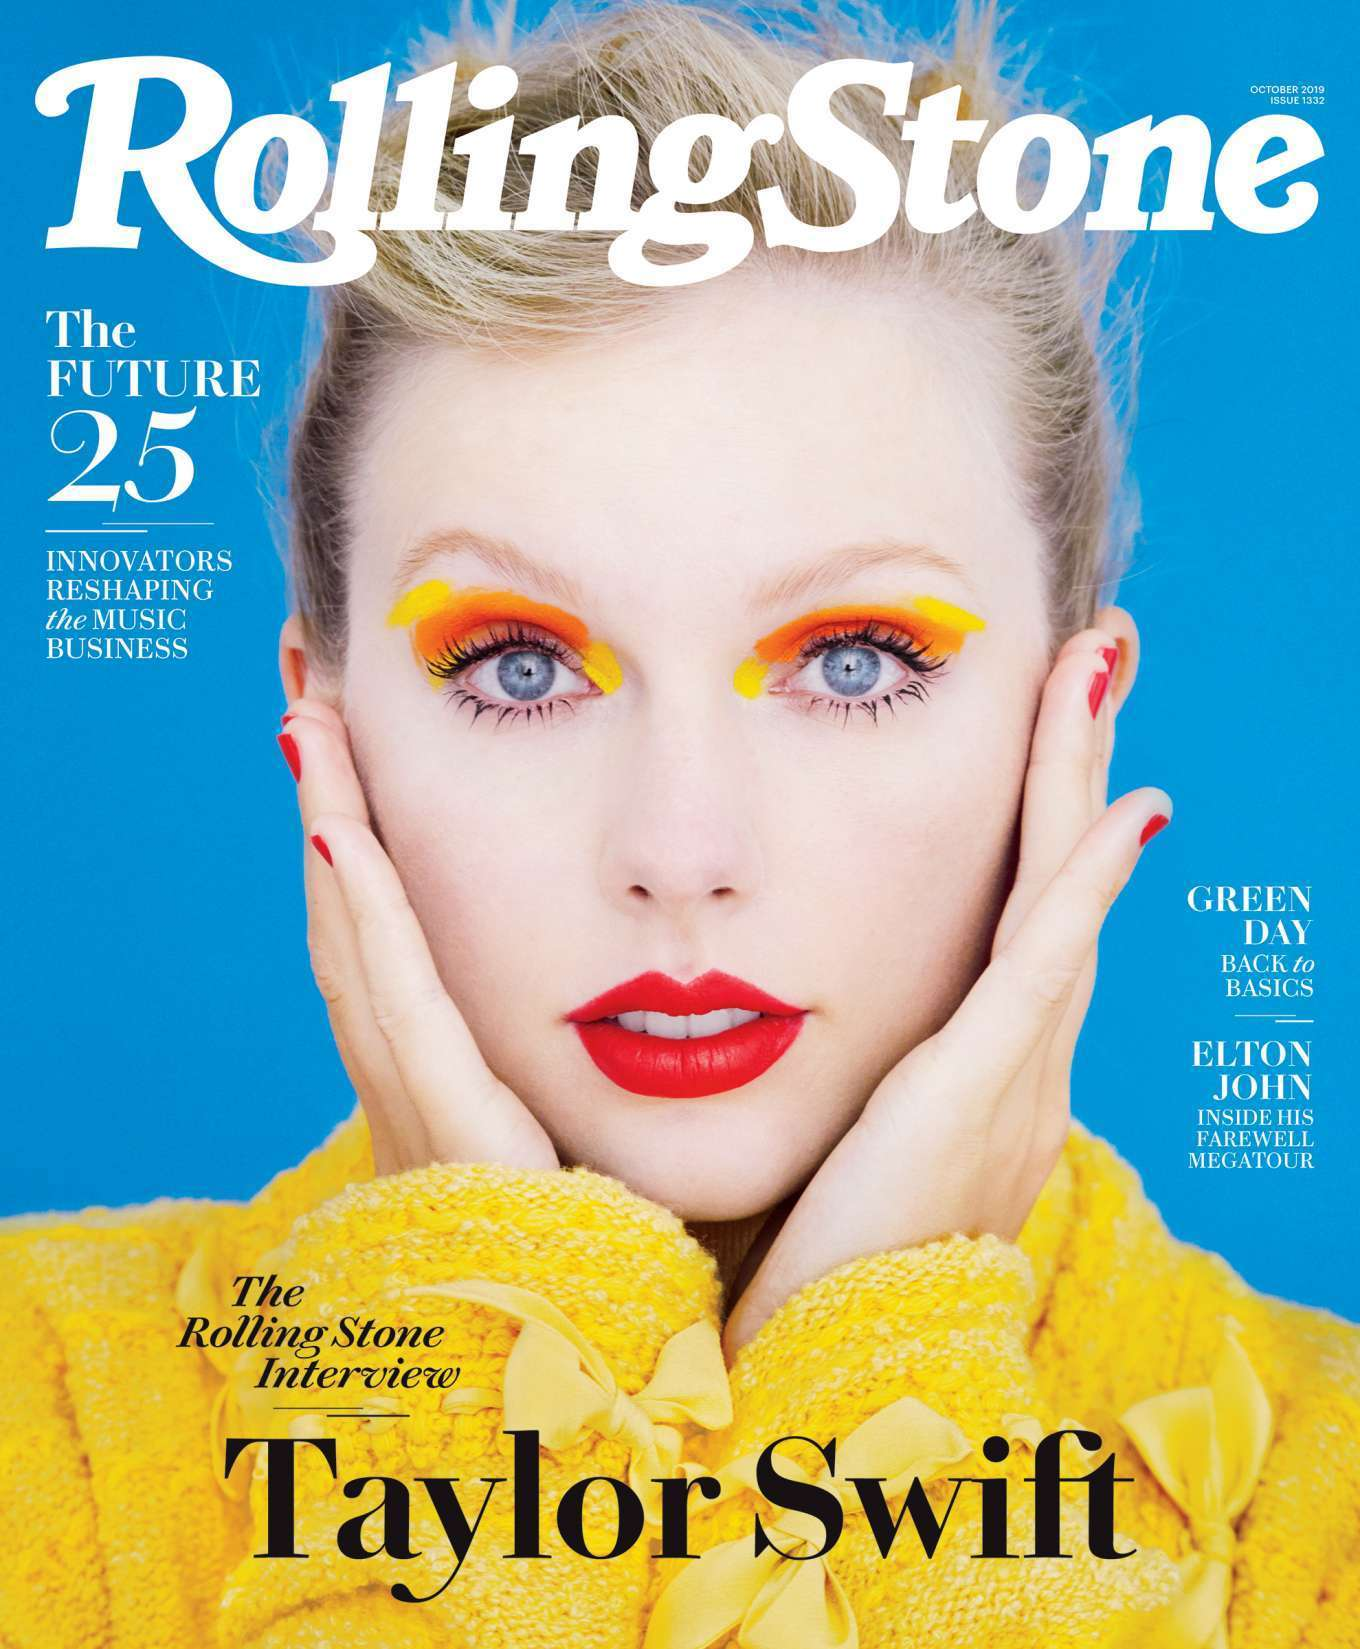 Taylor Swift in Rolling Stone Magazine - October 2019